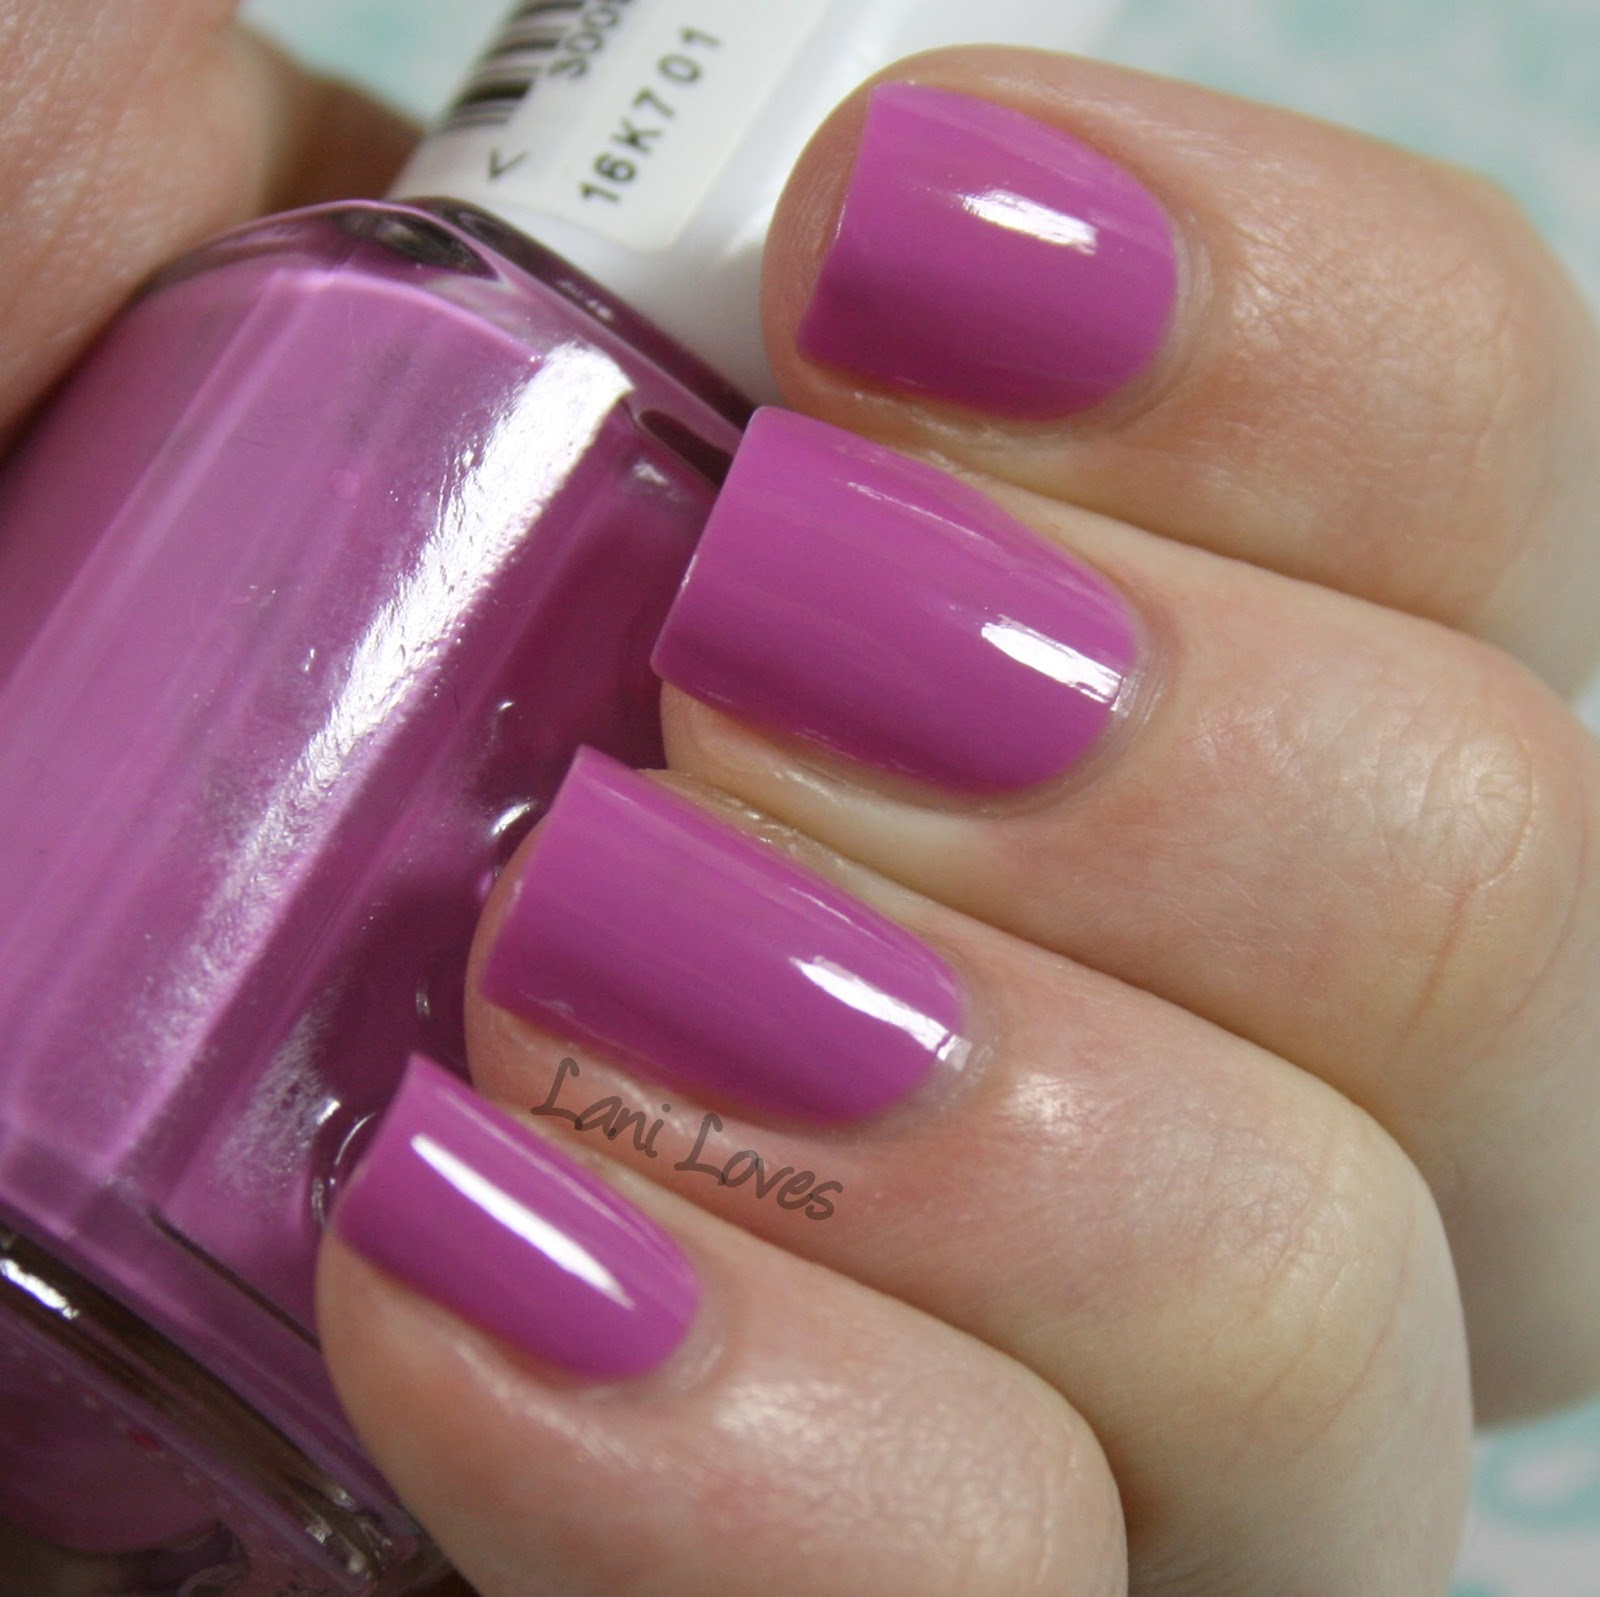 Essie - Splash of Grenadine Swatches & Review